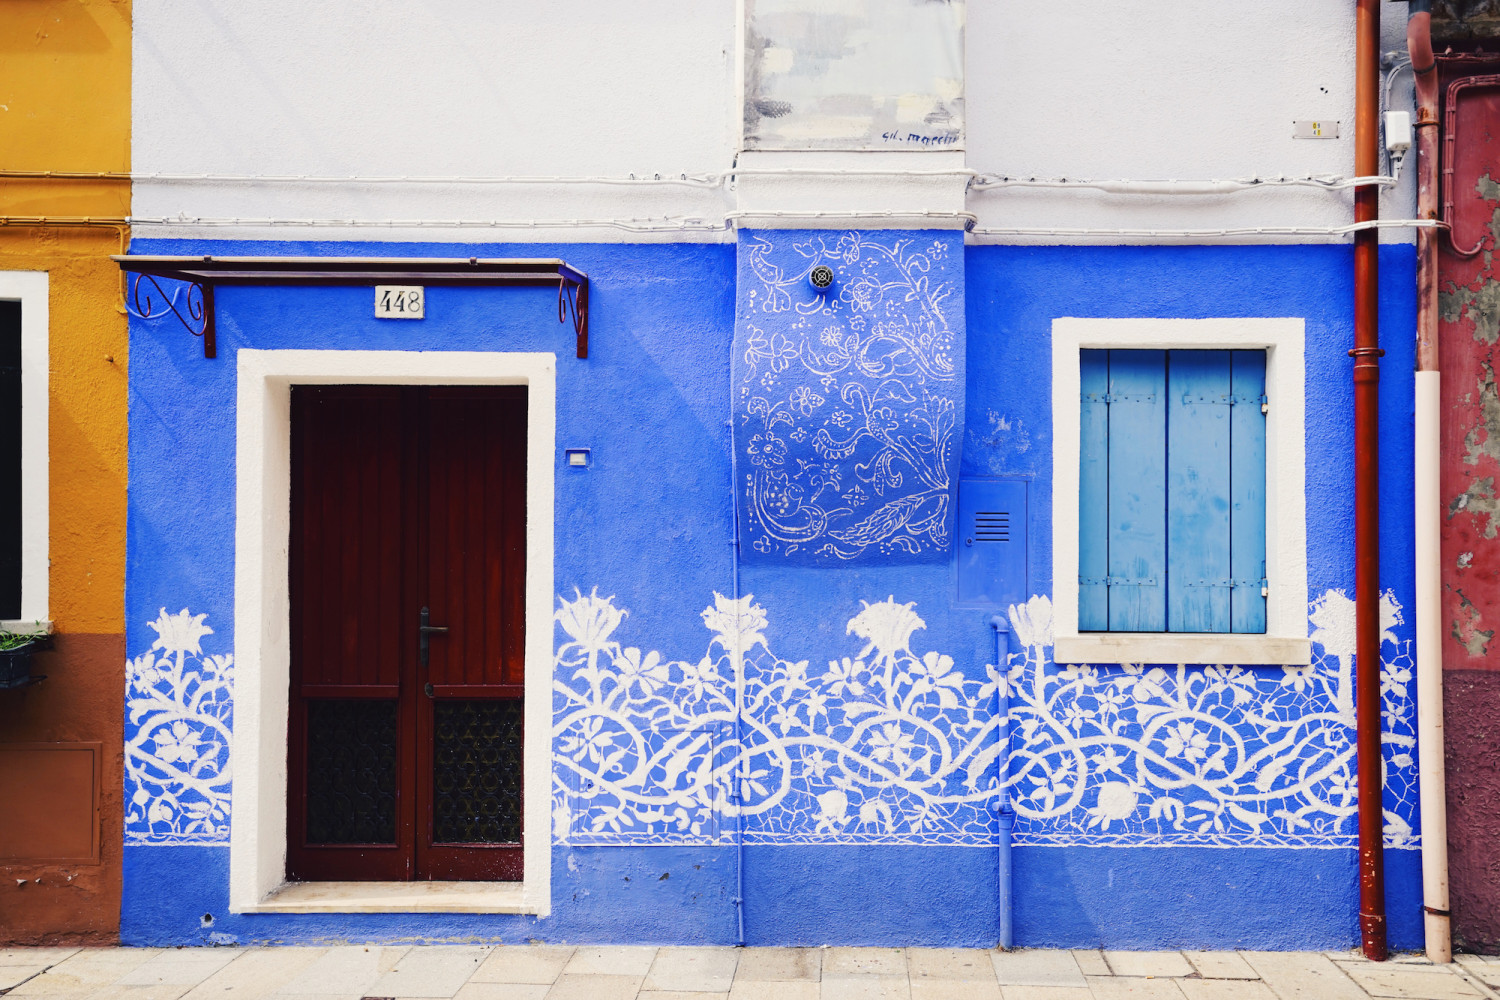 burano-colorful-blue-facade-dante-vincent-photography